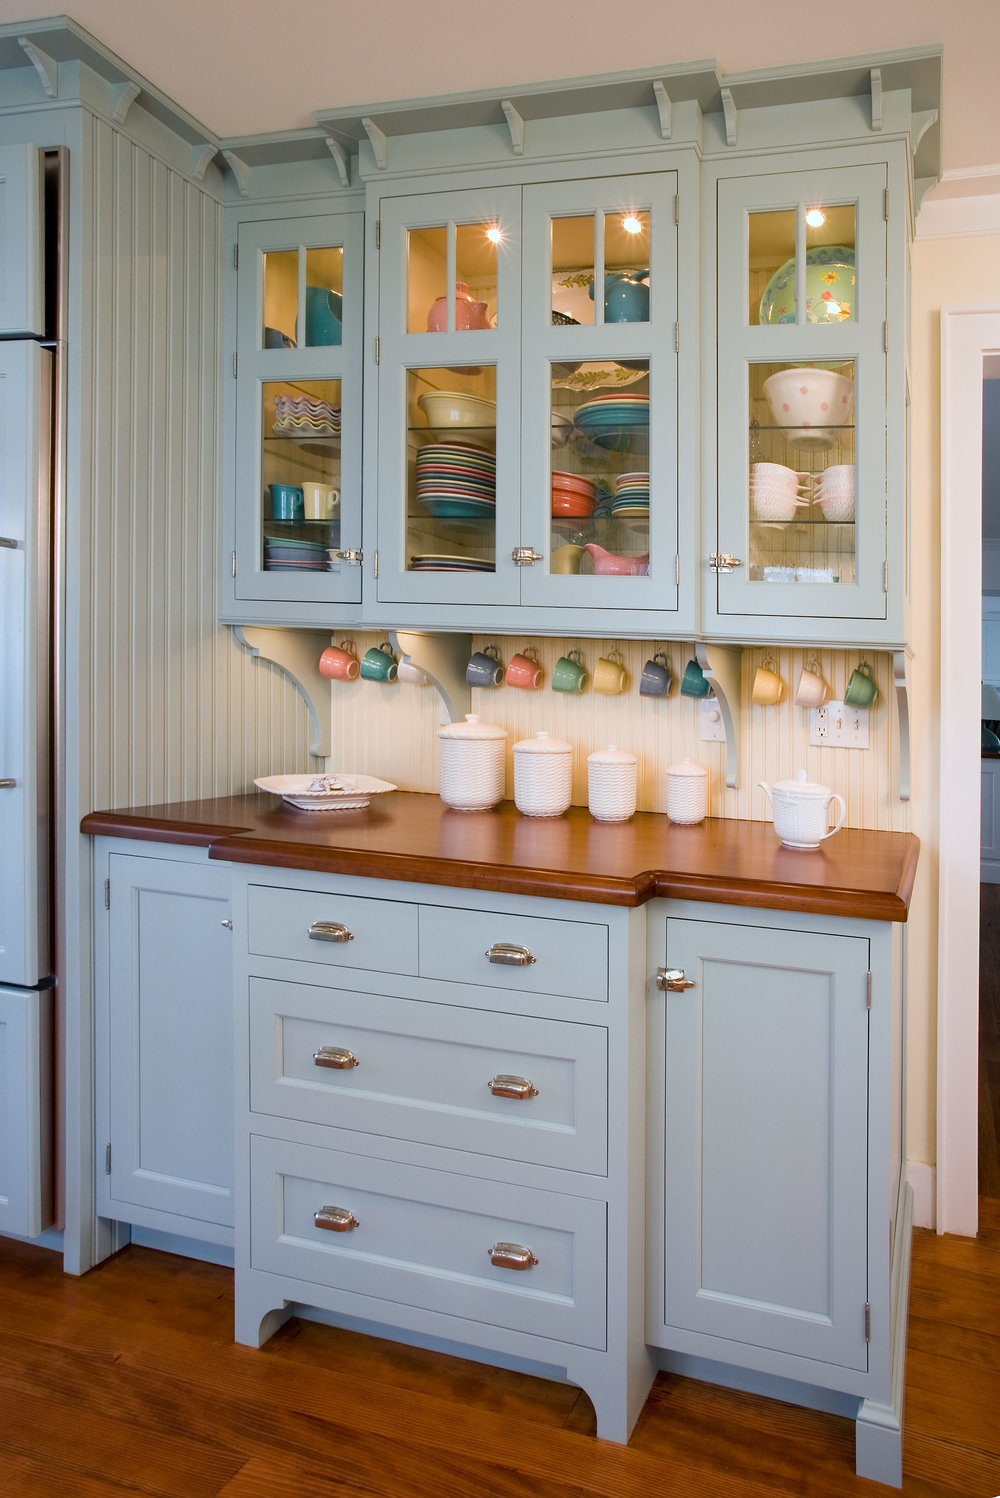 Storage - The hutch piece with a stepped out cherry countertop was created to showcase the owner's pastel Fiestaware collection. The wood top on the hutch also pulls in the tone of the floor.